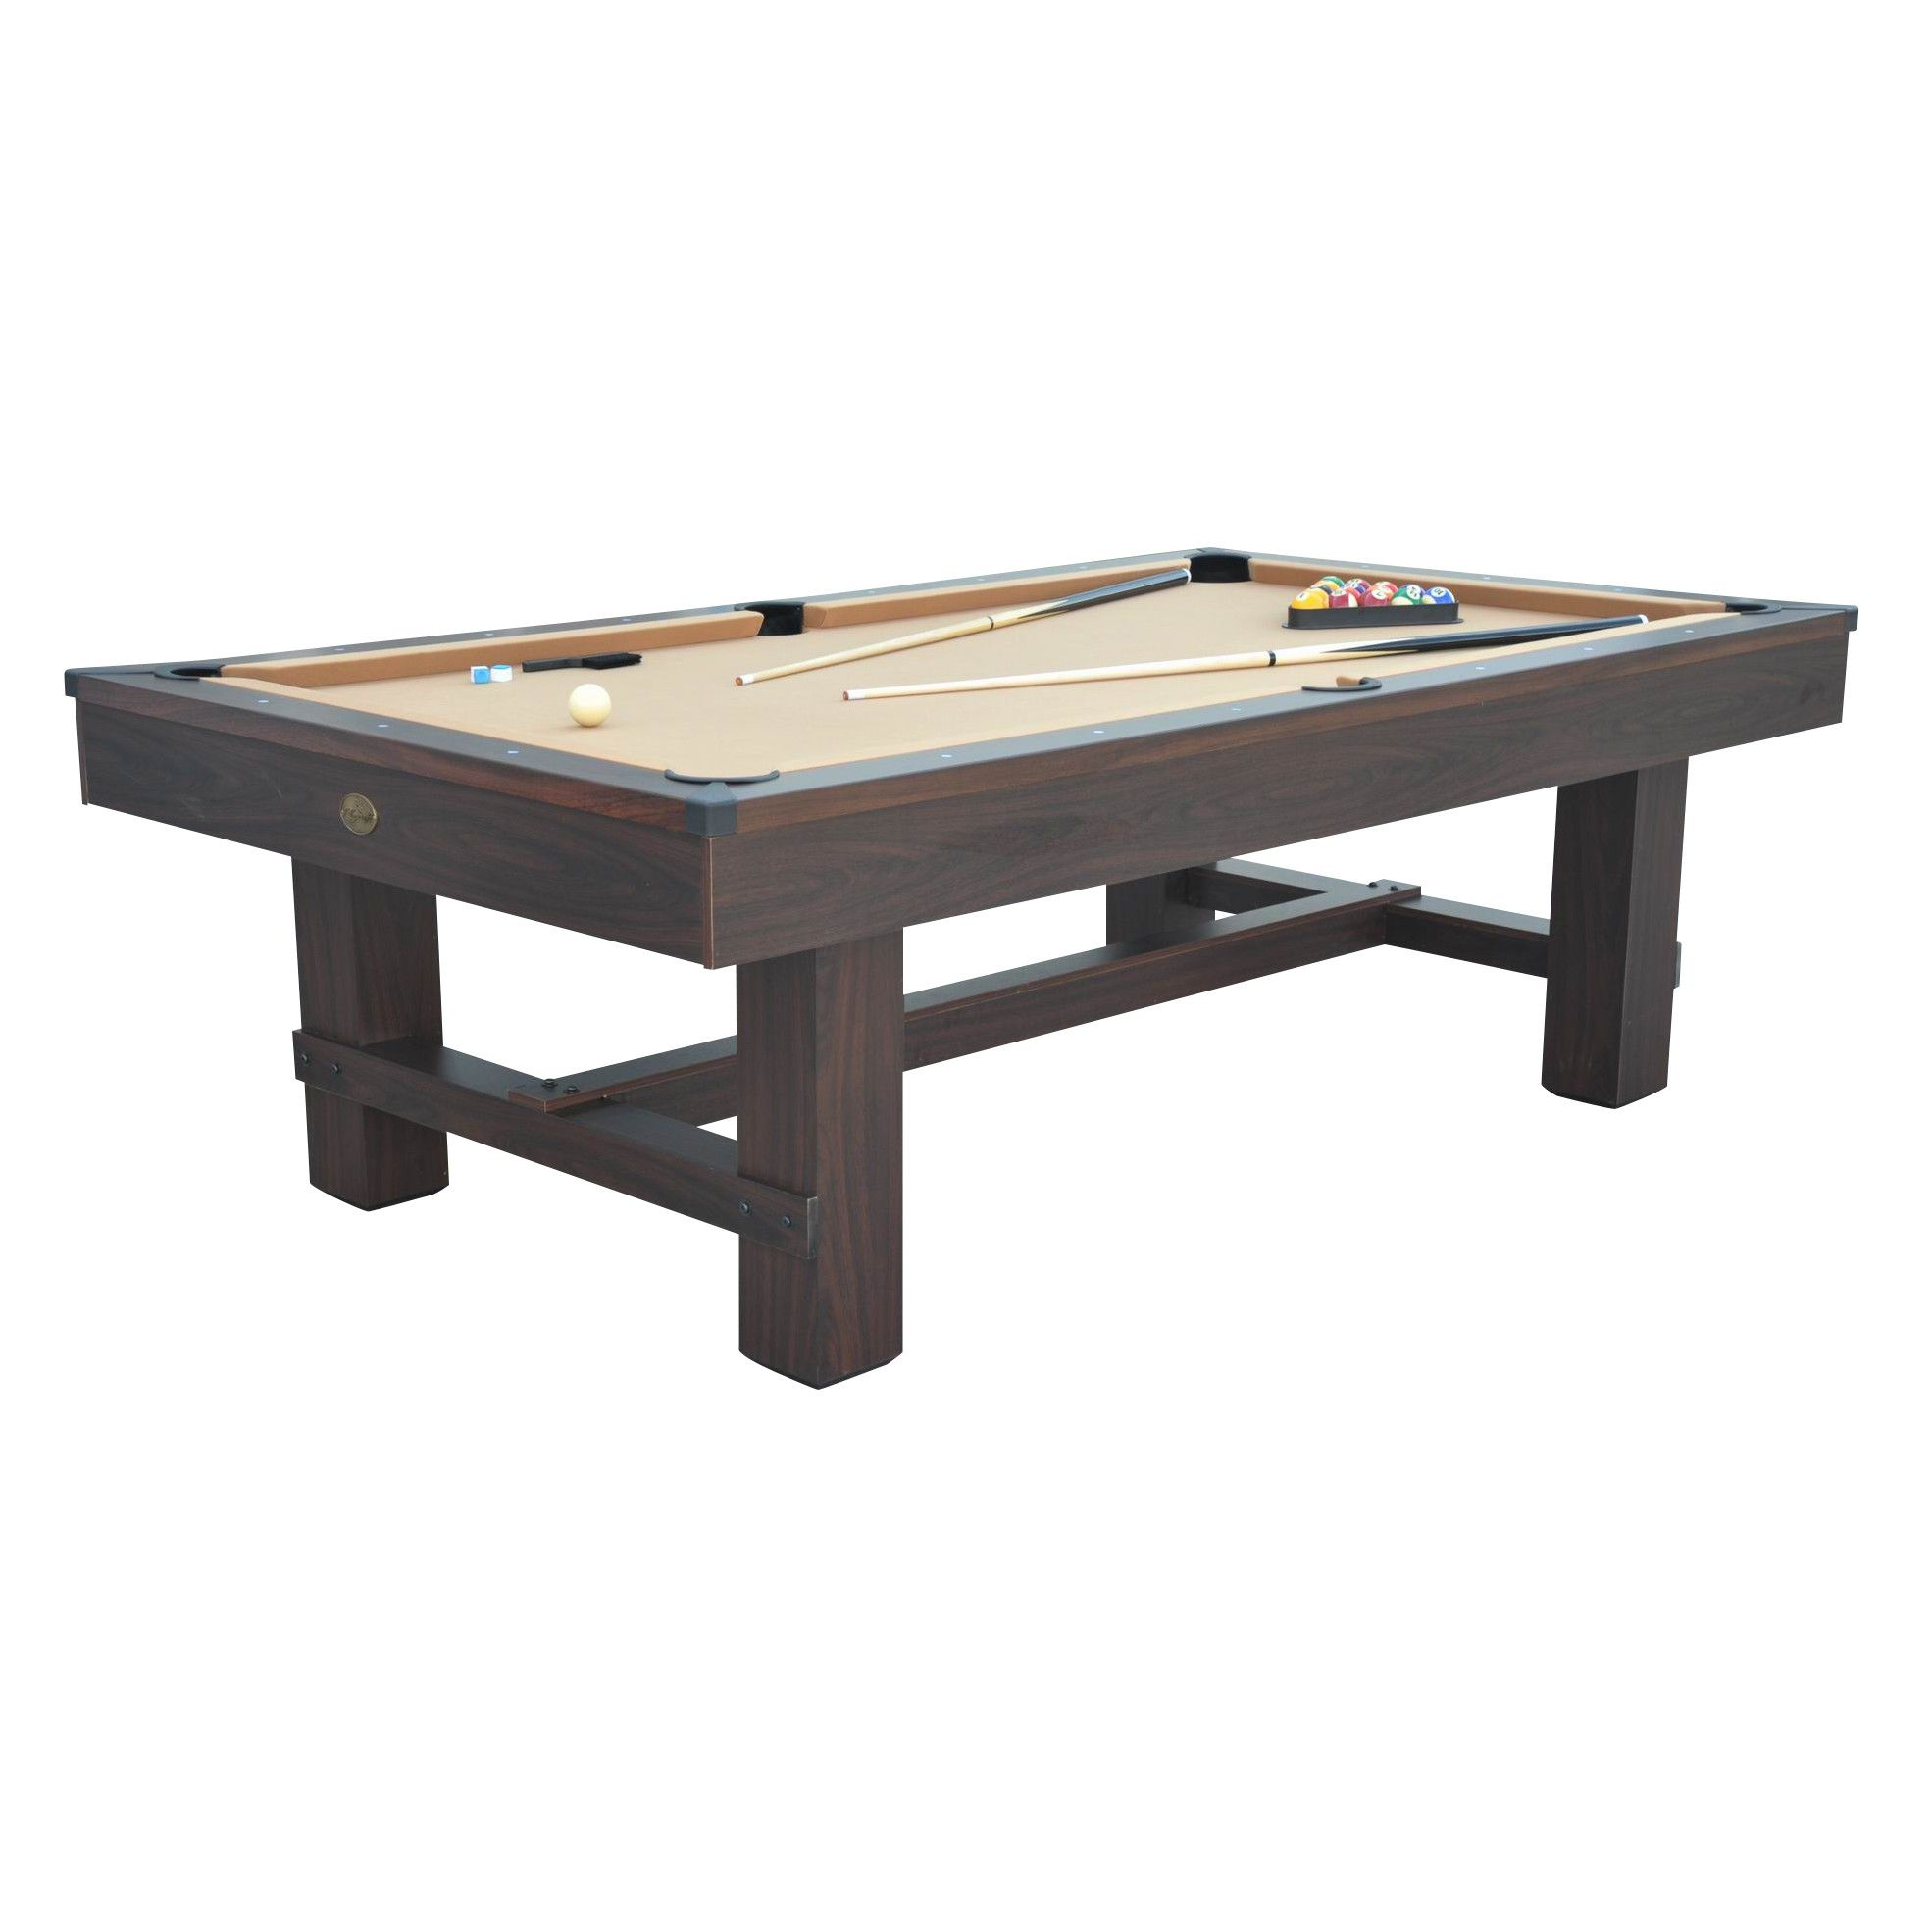 pcr black cheap pool claw amazon billiard table best legs inch harvil with pieces finish com rated helpful tables reviews includes customer in